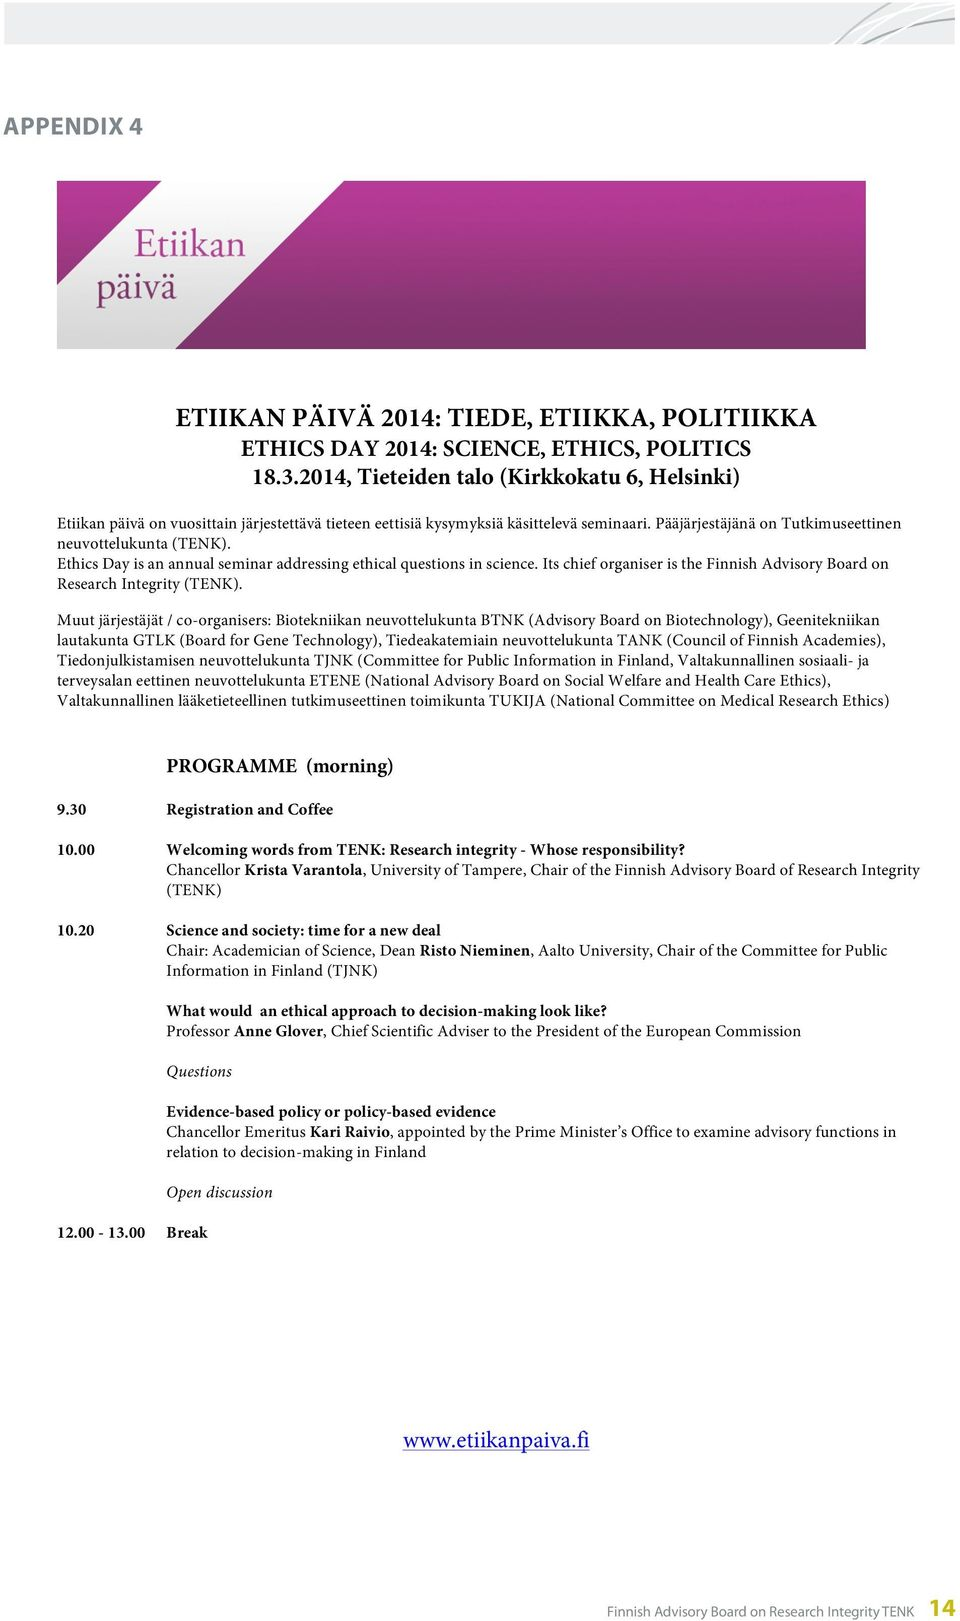 Ethics Day is an annual seminar addressing ethical questions in science. Its chief organiser is the Finnish Advisory Board on Research Integrity (TENK).